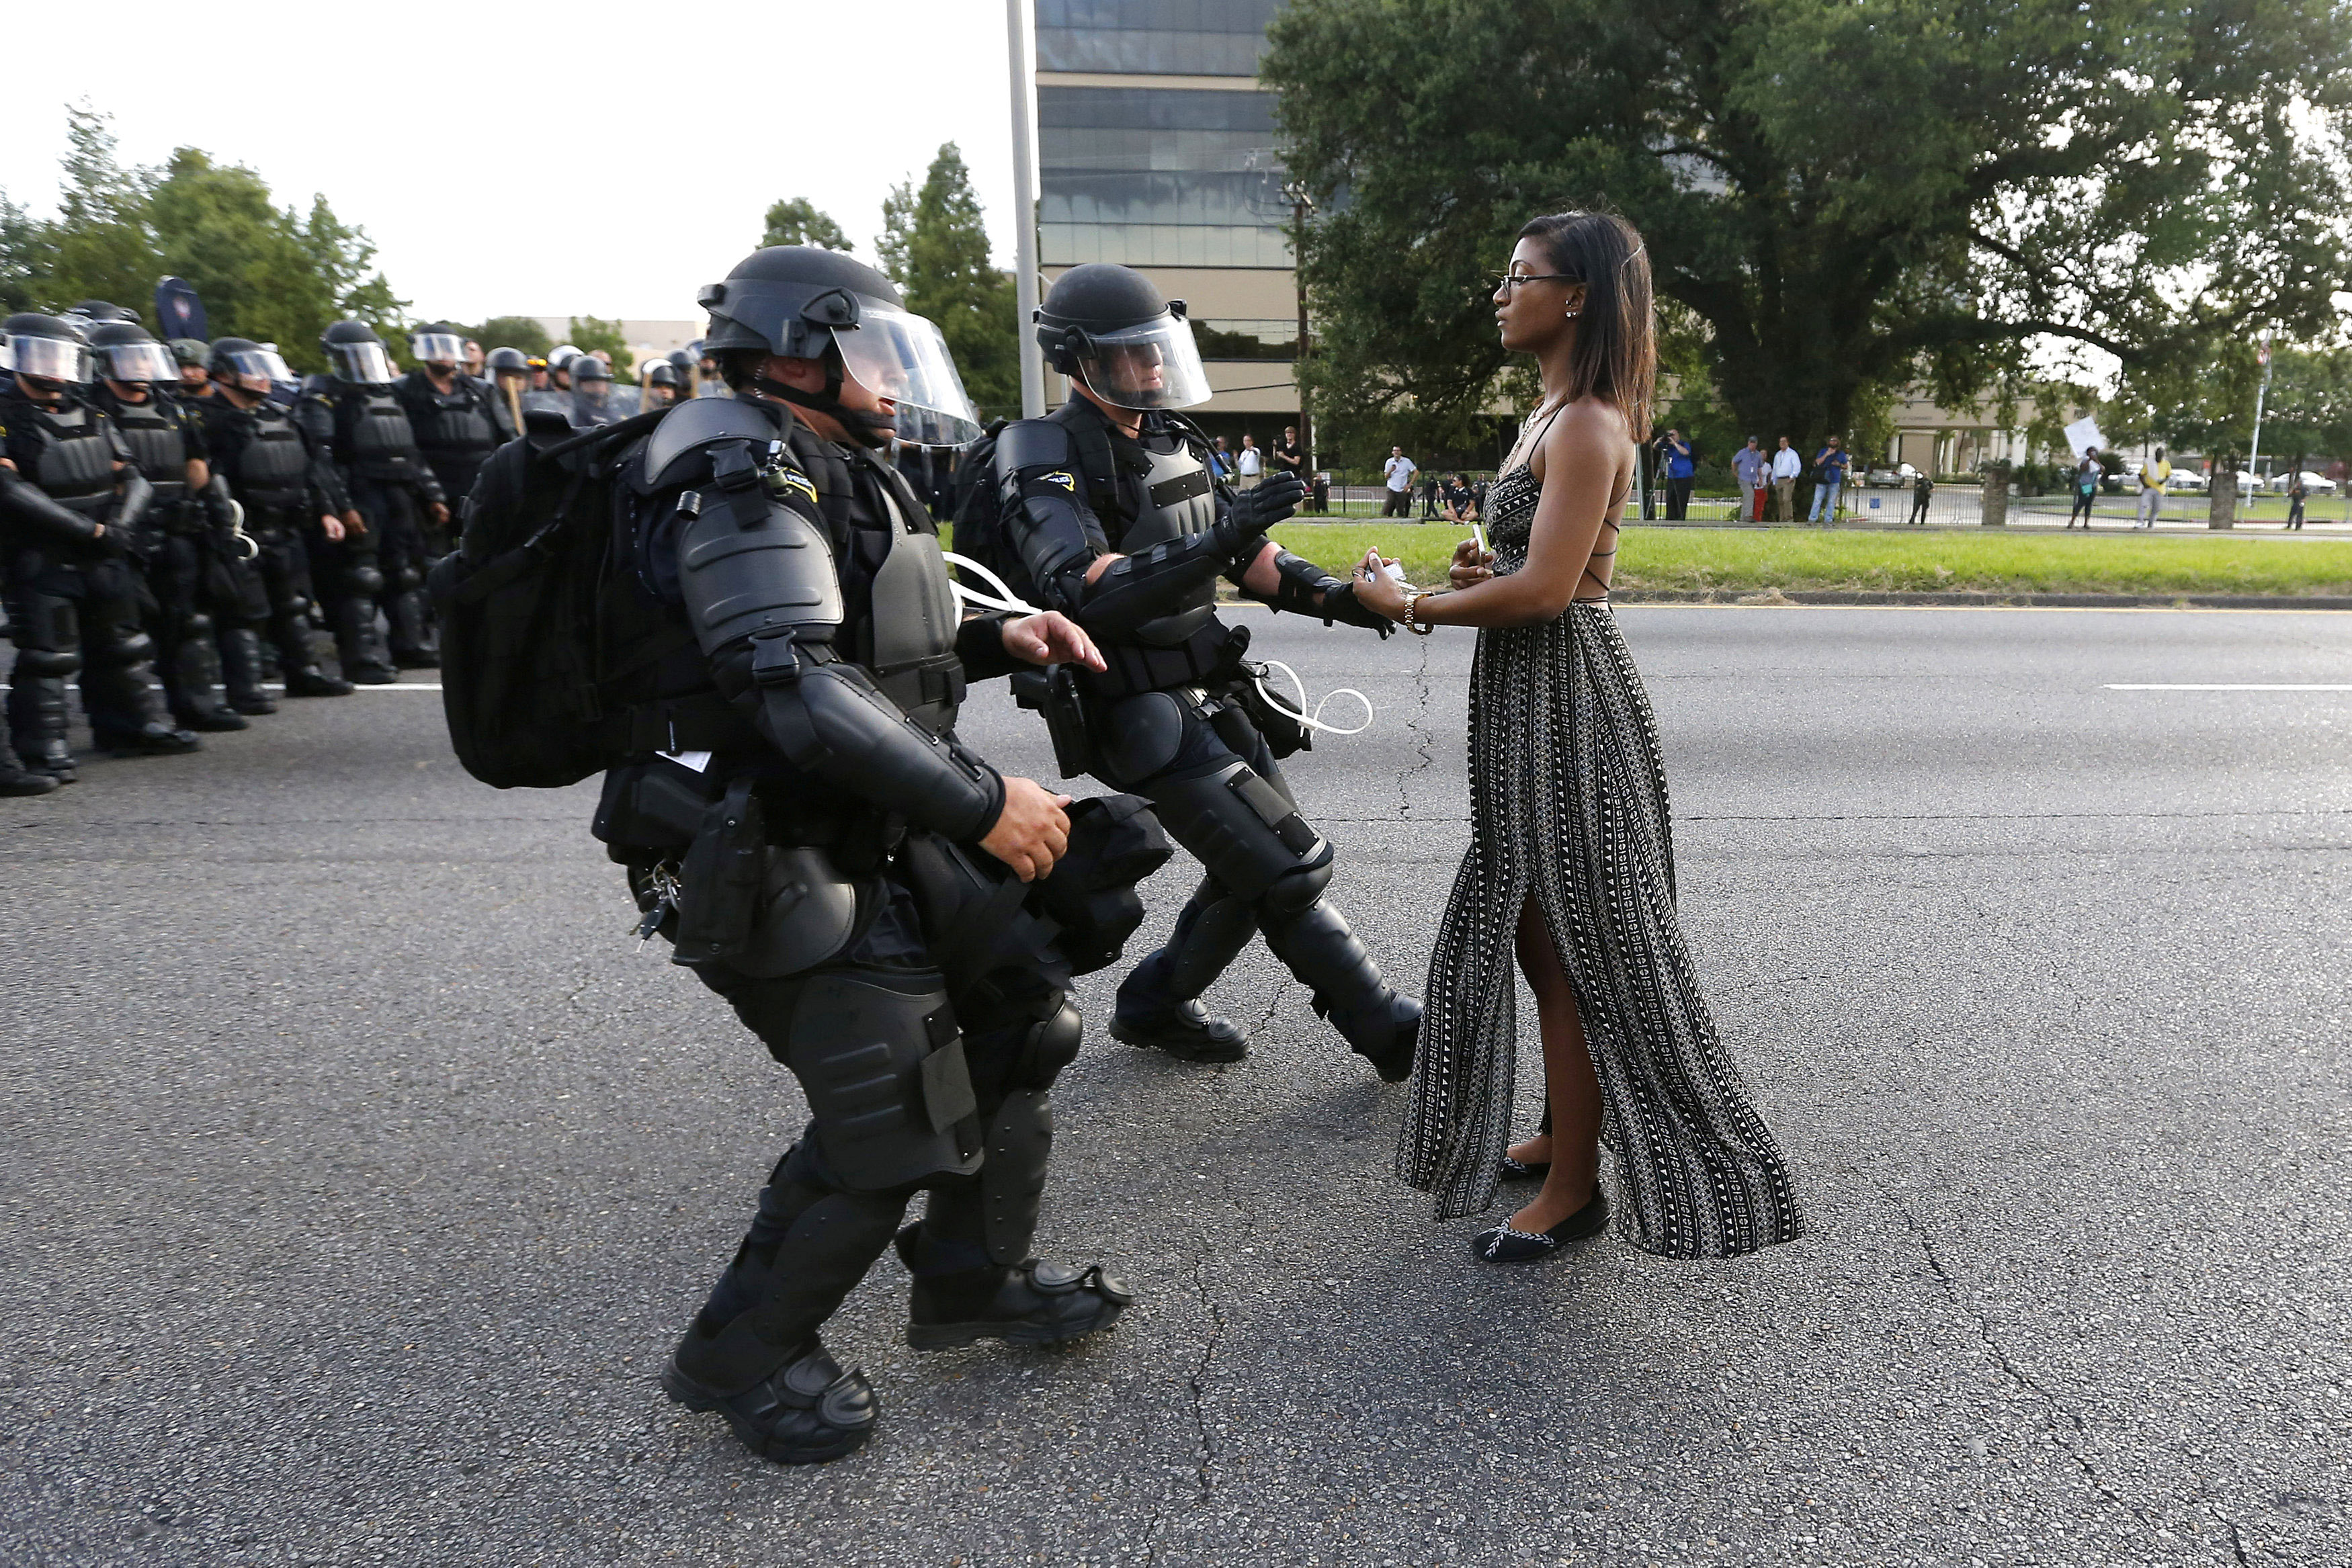 Protestor Ieshia Evans is detained by law enforcement near the headquarters of the Baton Rouge Police Department in Baton Rouge, Louisiana.